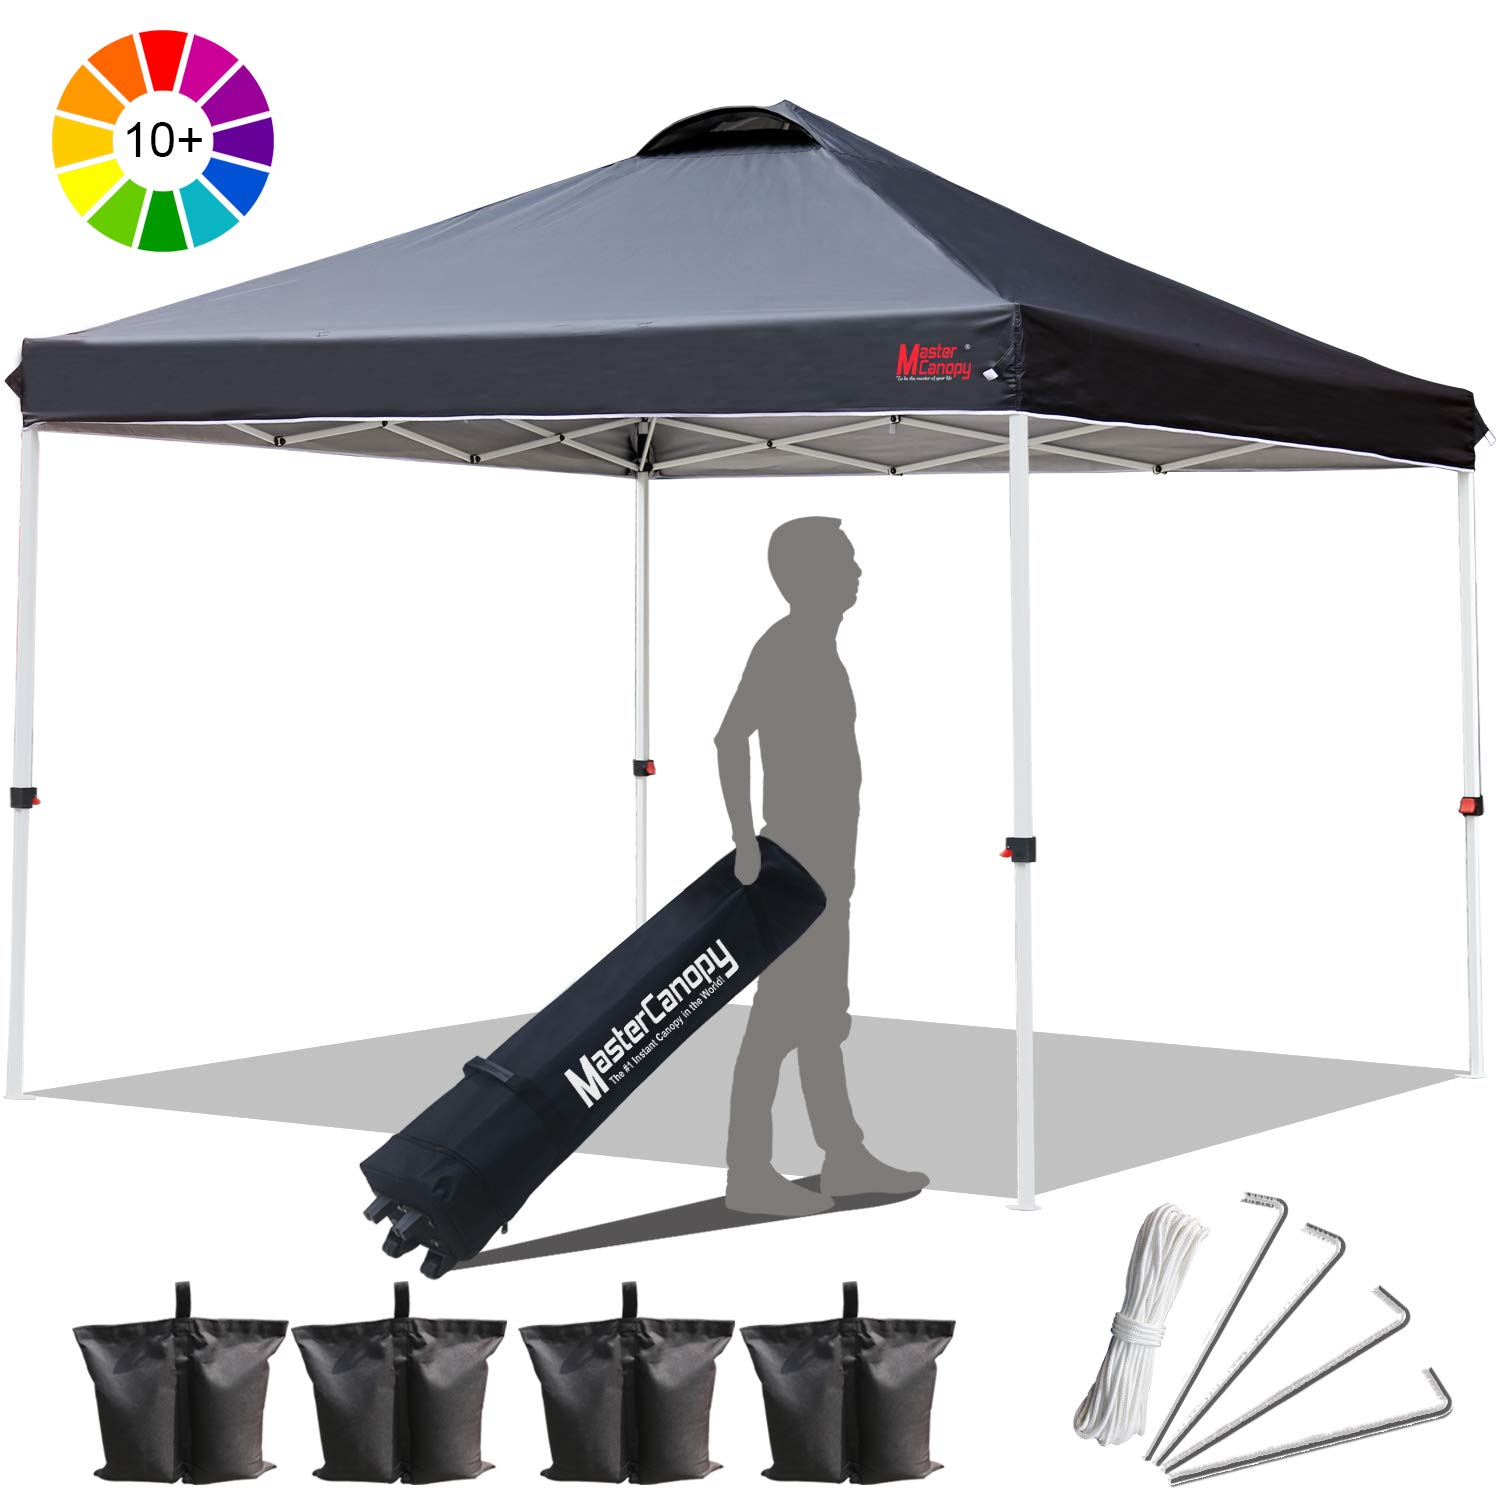 MasterCanopy Compact Canopy 10×10 Ez Pop up Canopy Portable Shade Instant Folding Better Air Circulation Canopy with Wheeled Bag,x4 Canopy Sandbags,x4 Tent Stakes Black